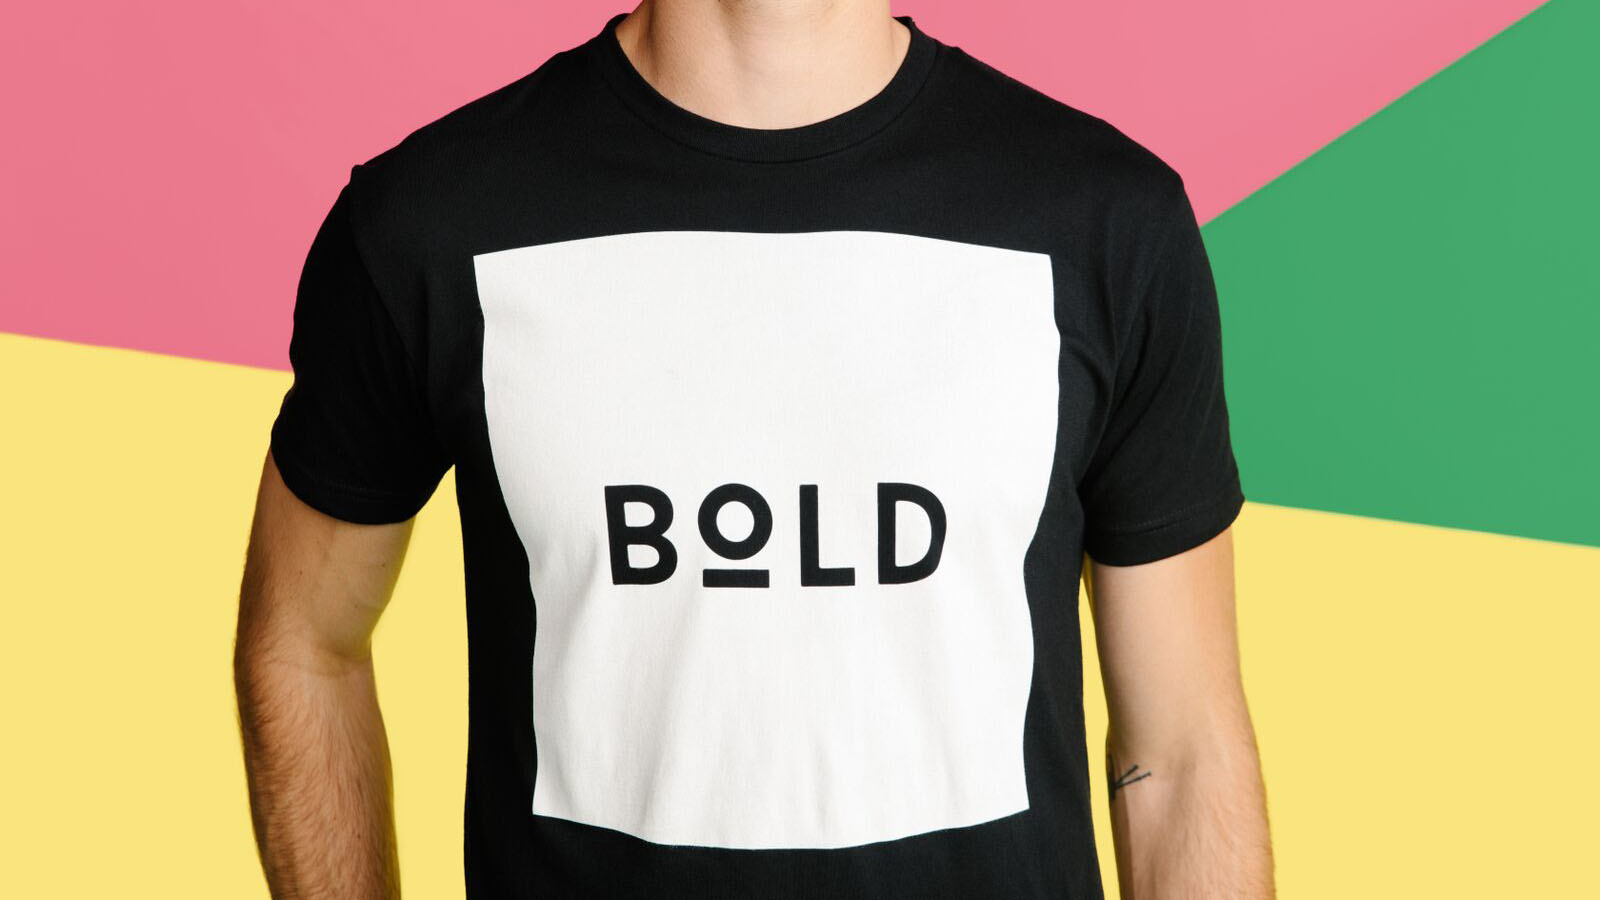 8 t-shirt design trends so far in 2018